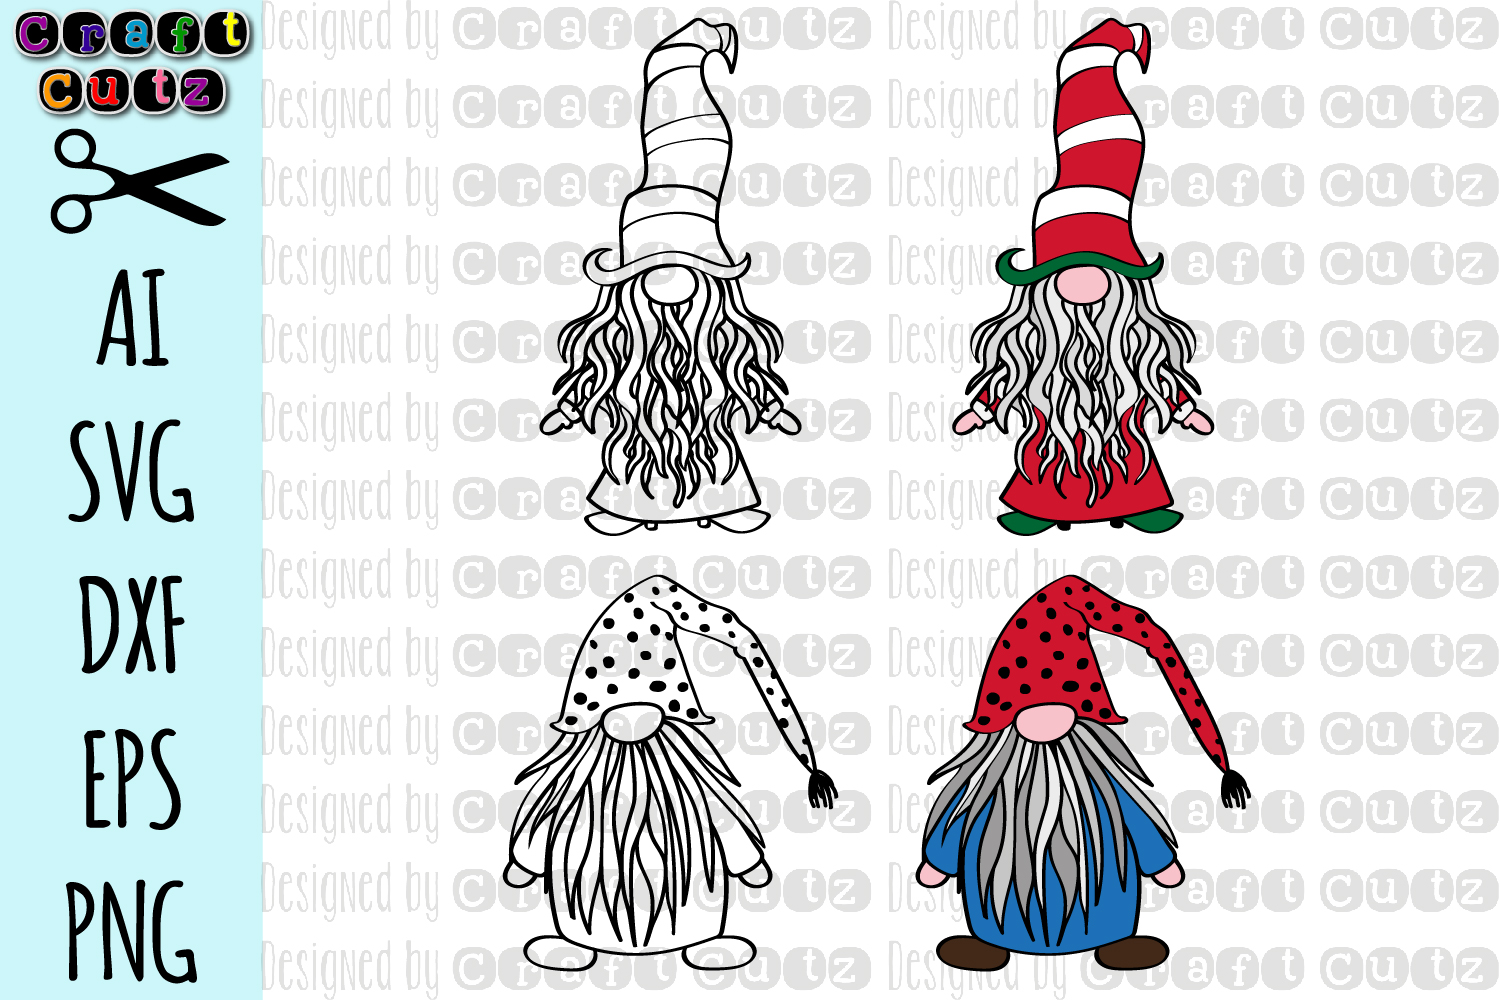 Cute Gnome SVG, Christmas Gnome, Gnome with Striped Hat svg example image 2